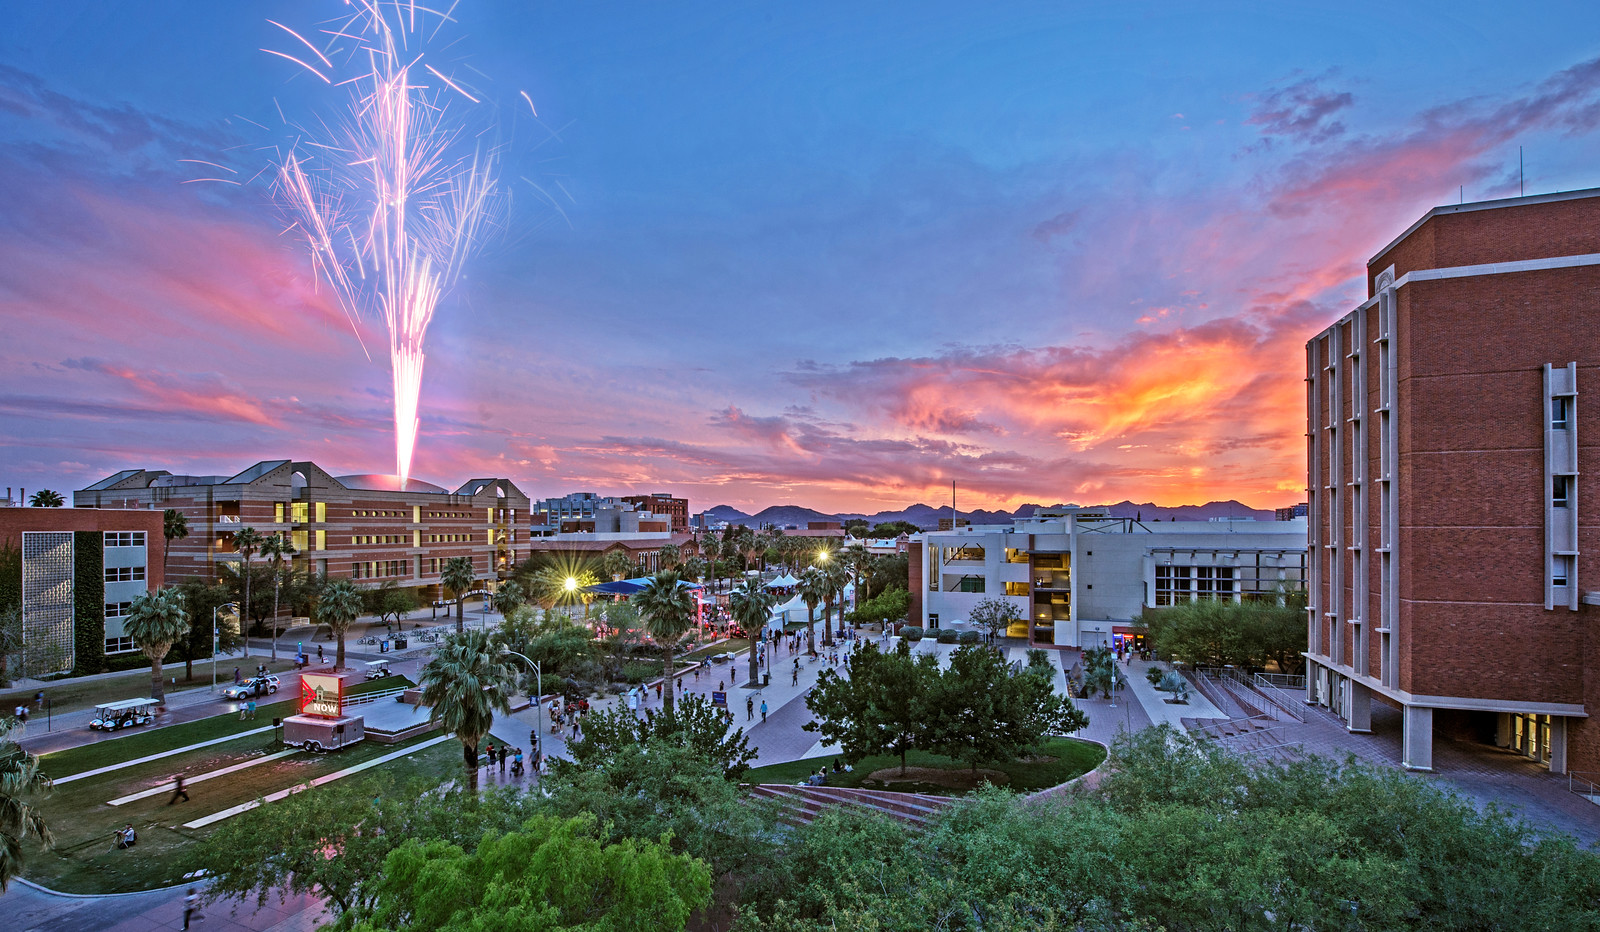 University of Arizona - Programs Offered: UA Direct | U-Track (mid-level ESL) | IEP (low-level ESL) | Postgraduate Engineering Programs